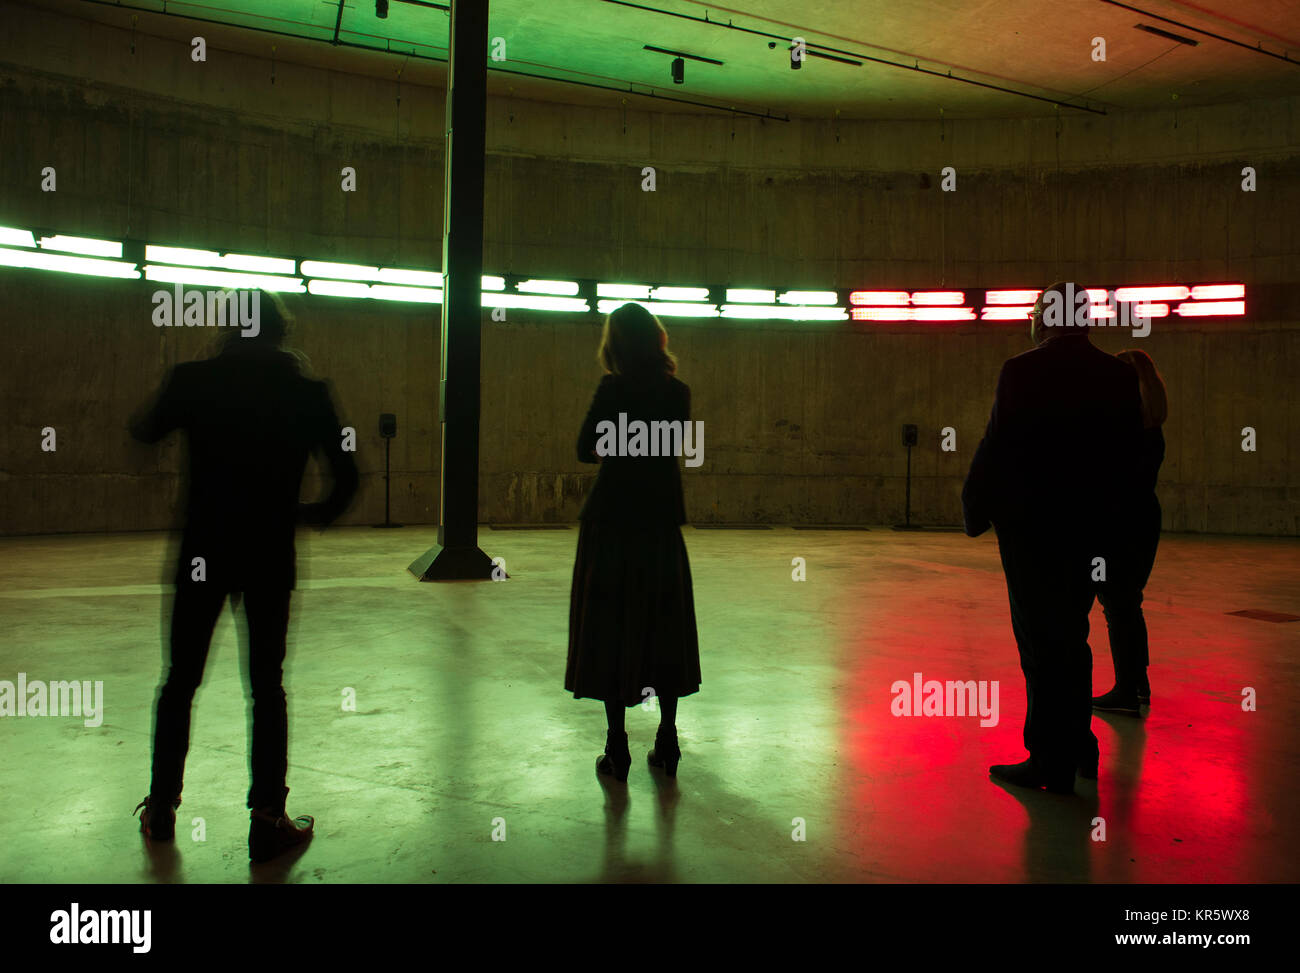 Tate Modern, London, UK. 18 December 2017. The Way Earthly Things Are Going 2017, an immersive and multi-channel - Stock Image